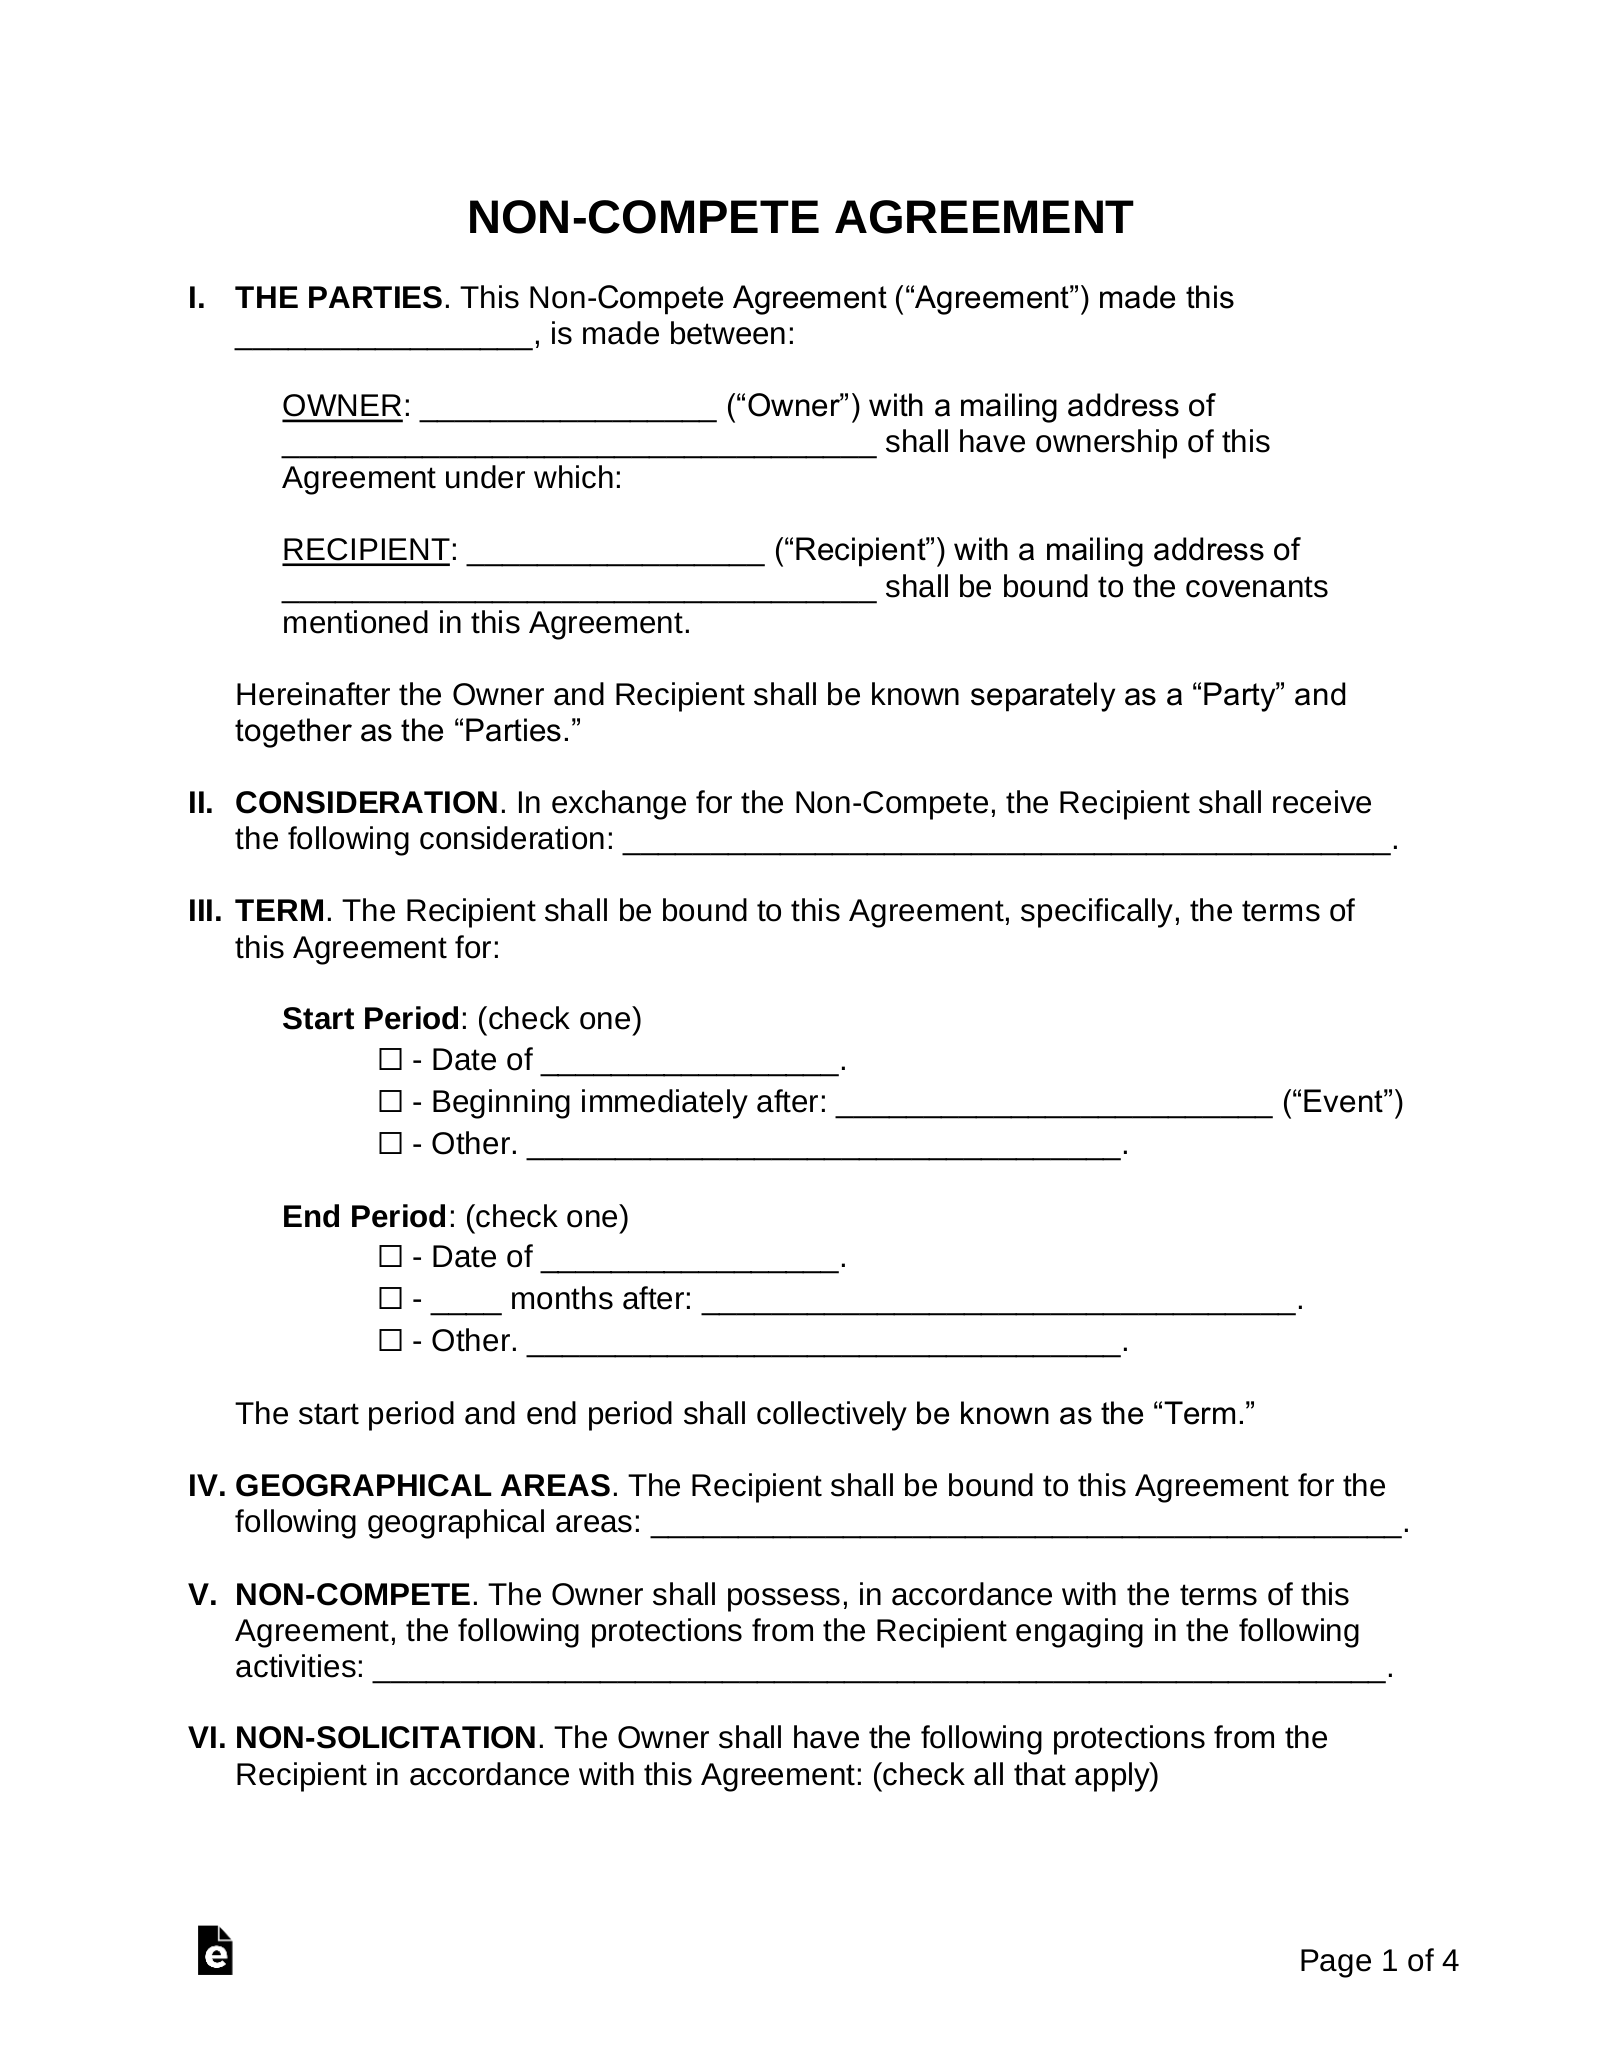 Non Compete Agreement Templates Eforms Free Fillable Forms